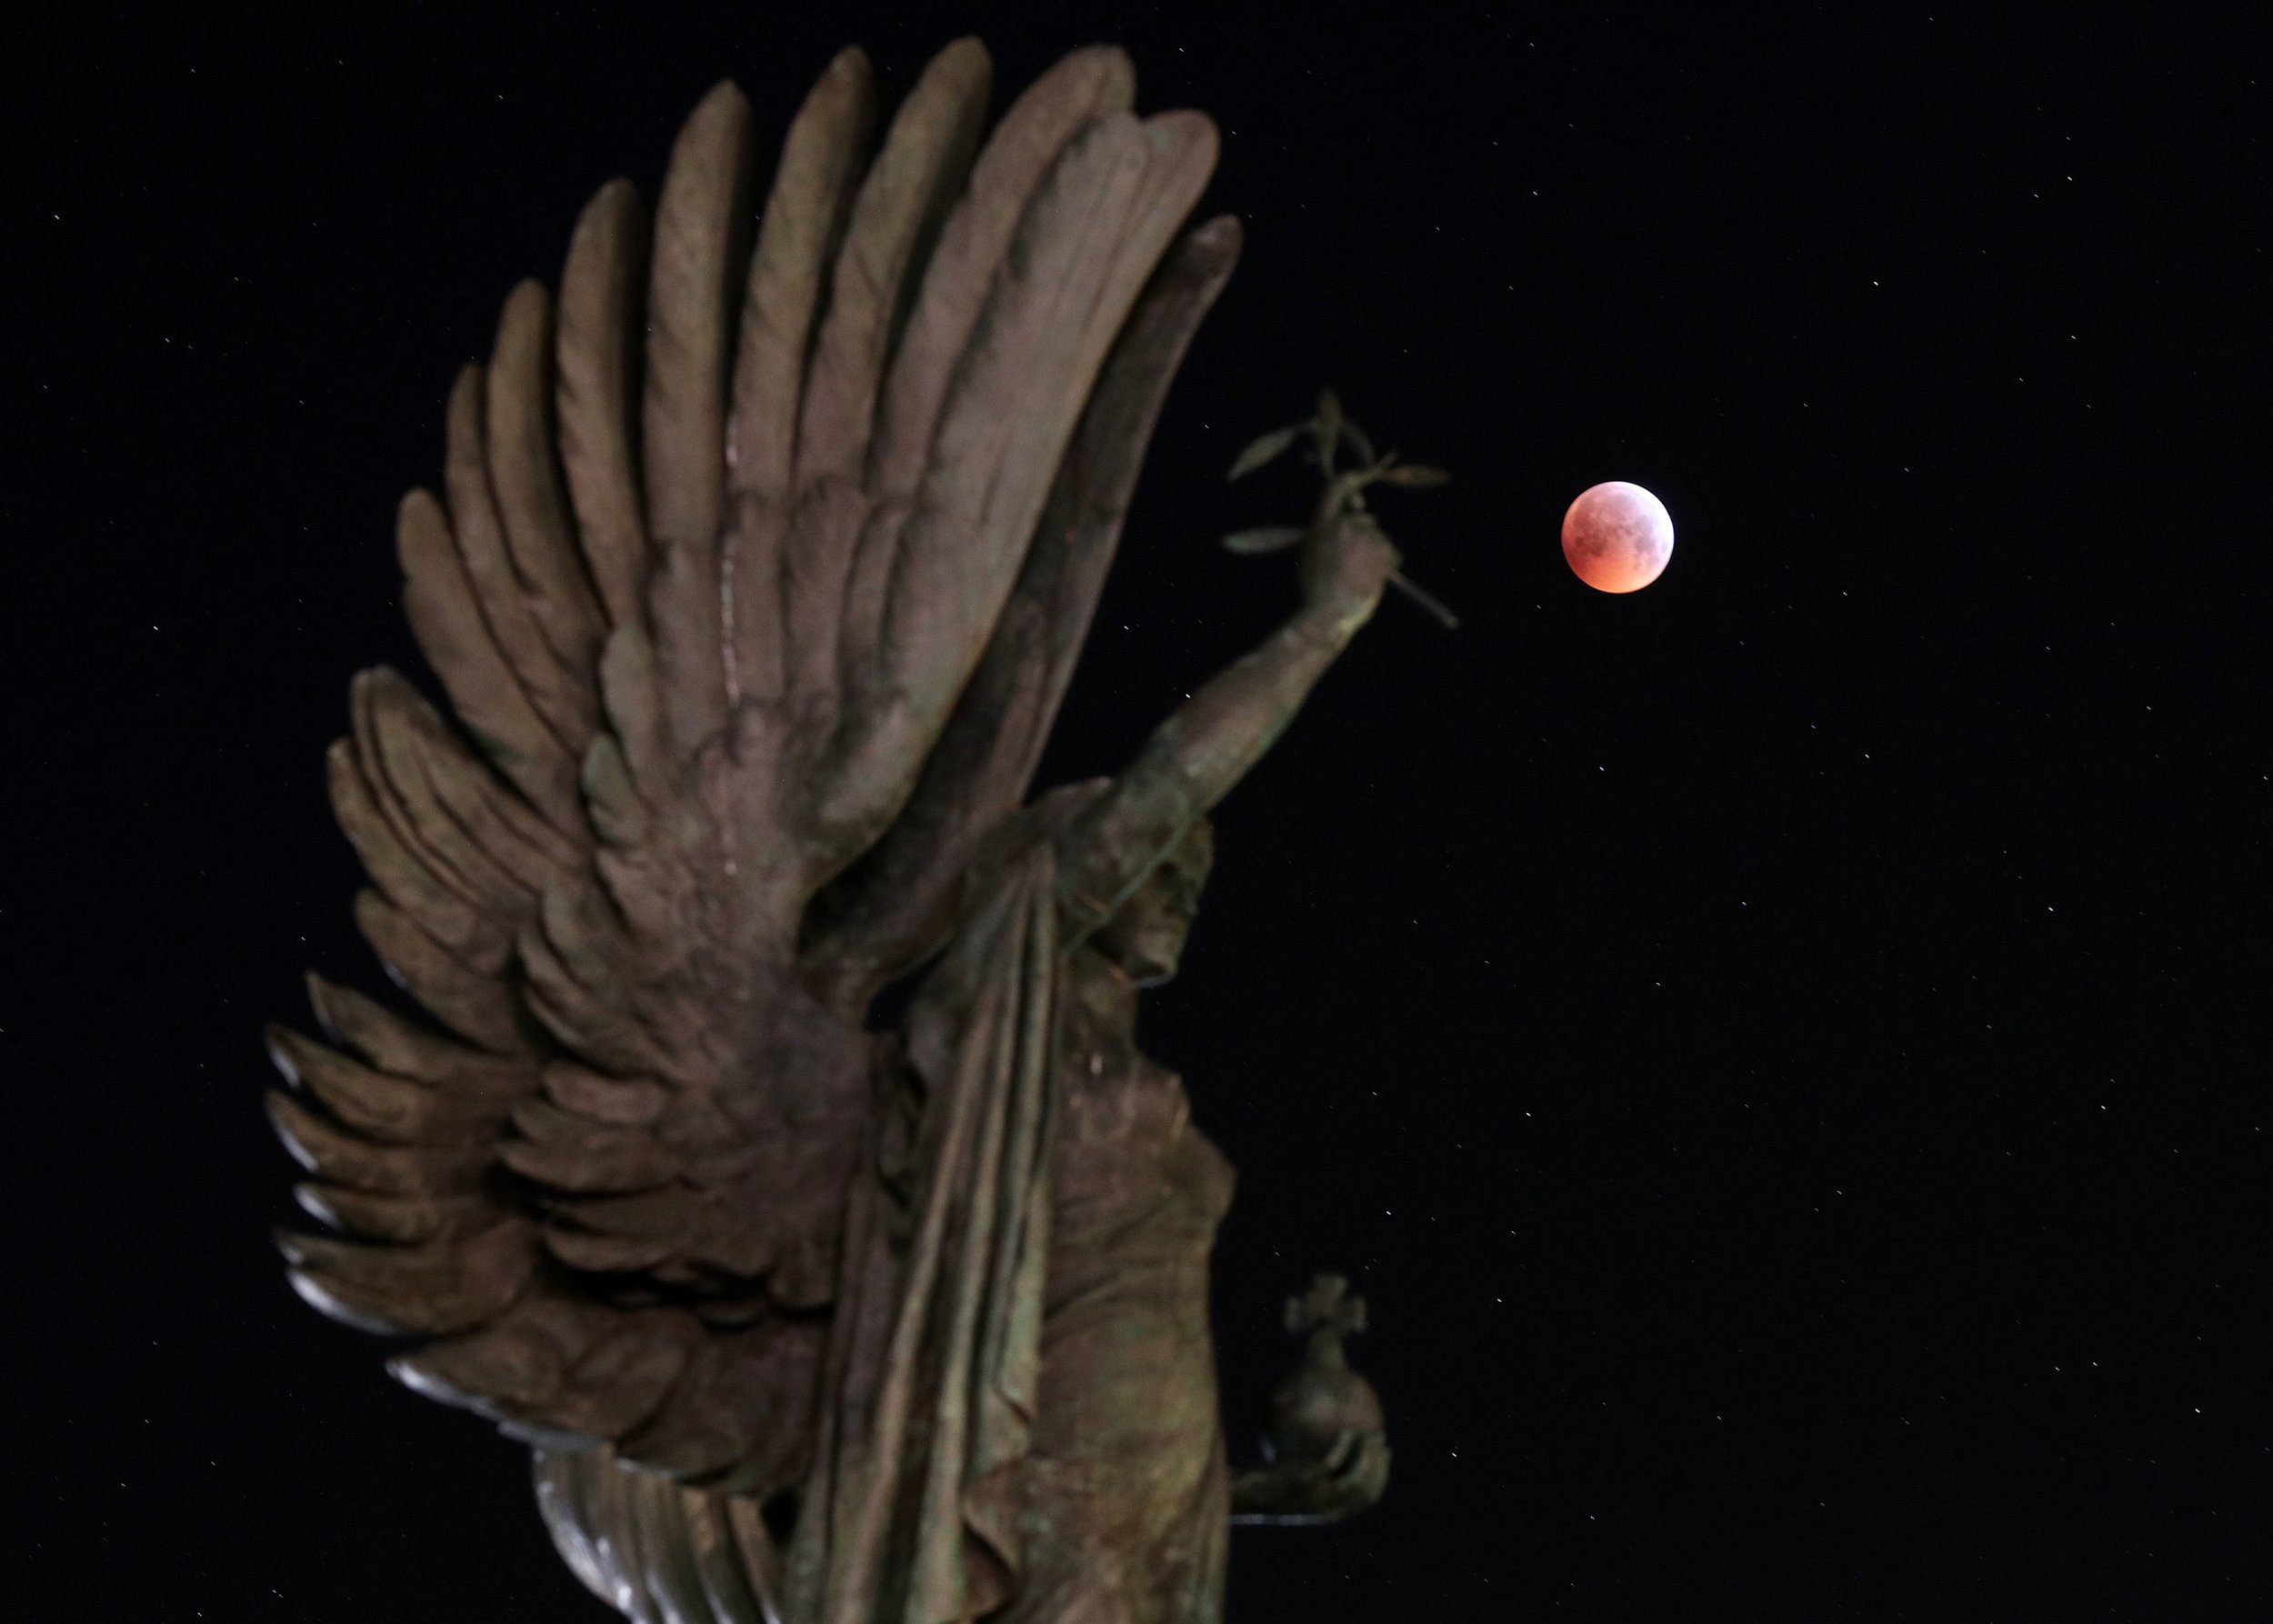 """EDITORS NOTE LONG EXPOSURE A super blood wolf moon over the peace statue on Brighton seafront during a lunar eclipse. PRESS ASSOCIATION Photo. Picture date: Monday January 21, 2019. A total lunar eclipse colours the lunar surface a reddish hue at the same time it appears brighter and closer to earth than normal, seeing phenomena known as a blood moon and supermoon combine. And in January, the full moon is sometimes labelled a """"wolf"""" moon, creating the unusual celestial label which seems to have stuck. See PA Story SCIENCE Eclipse. Photo credit should read: Andrew Matthews/PA Wire"""